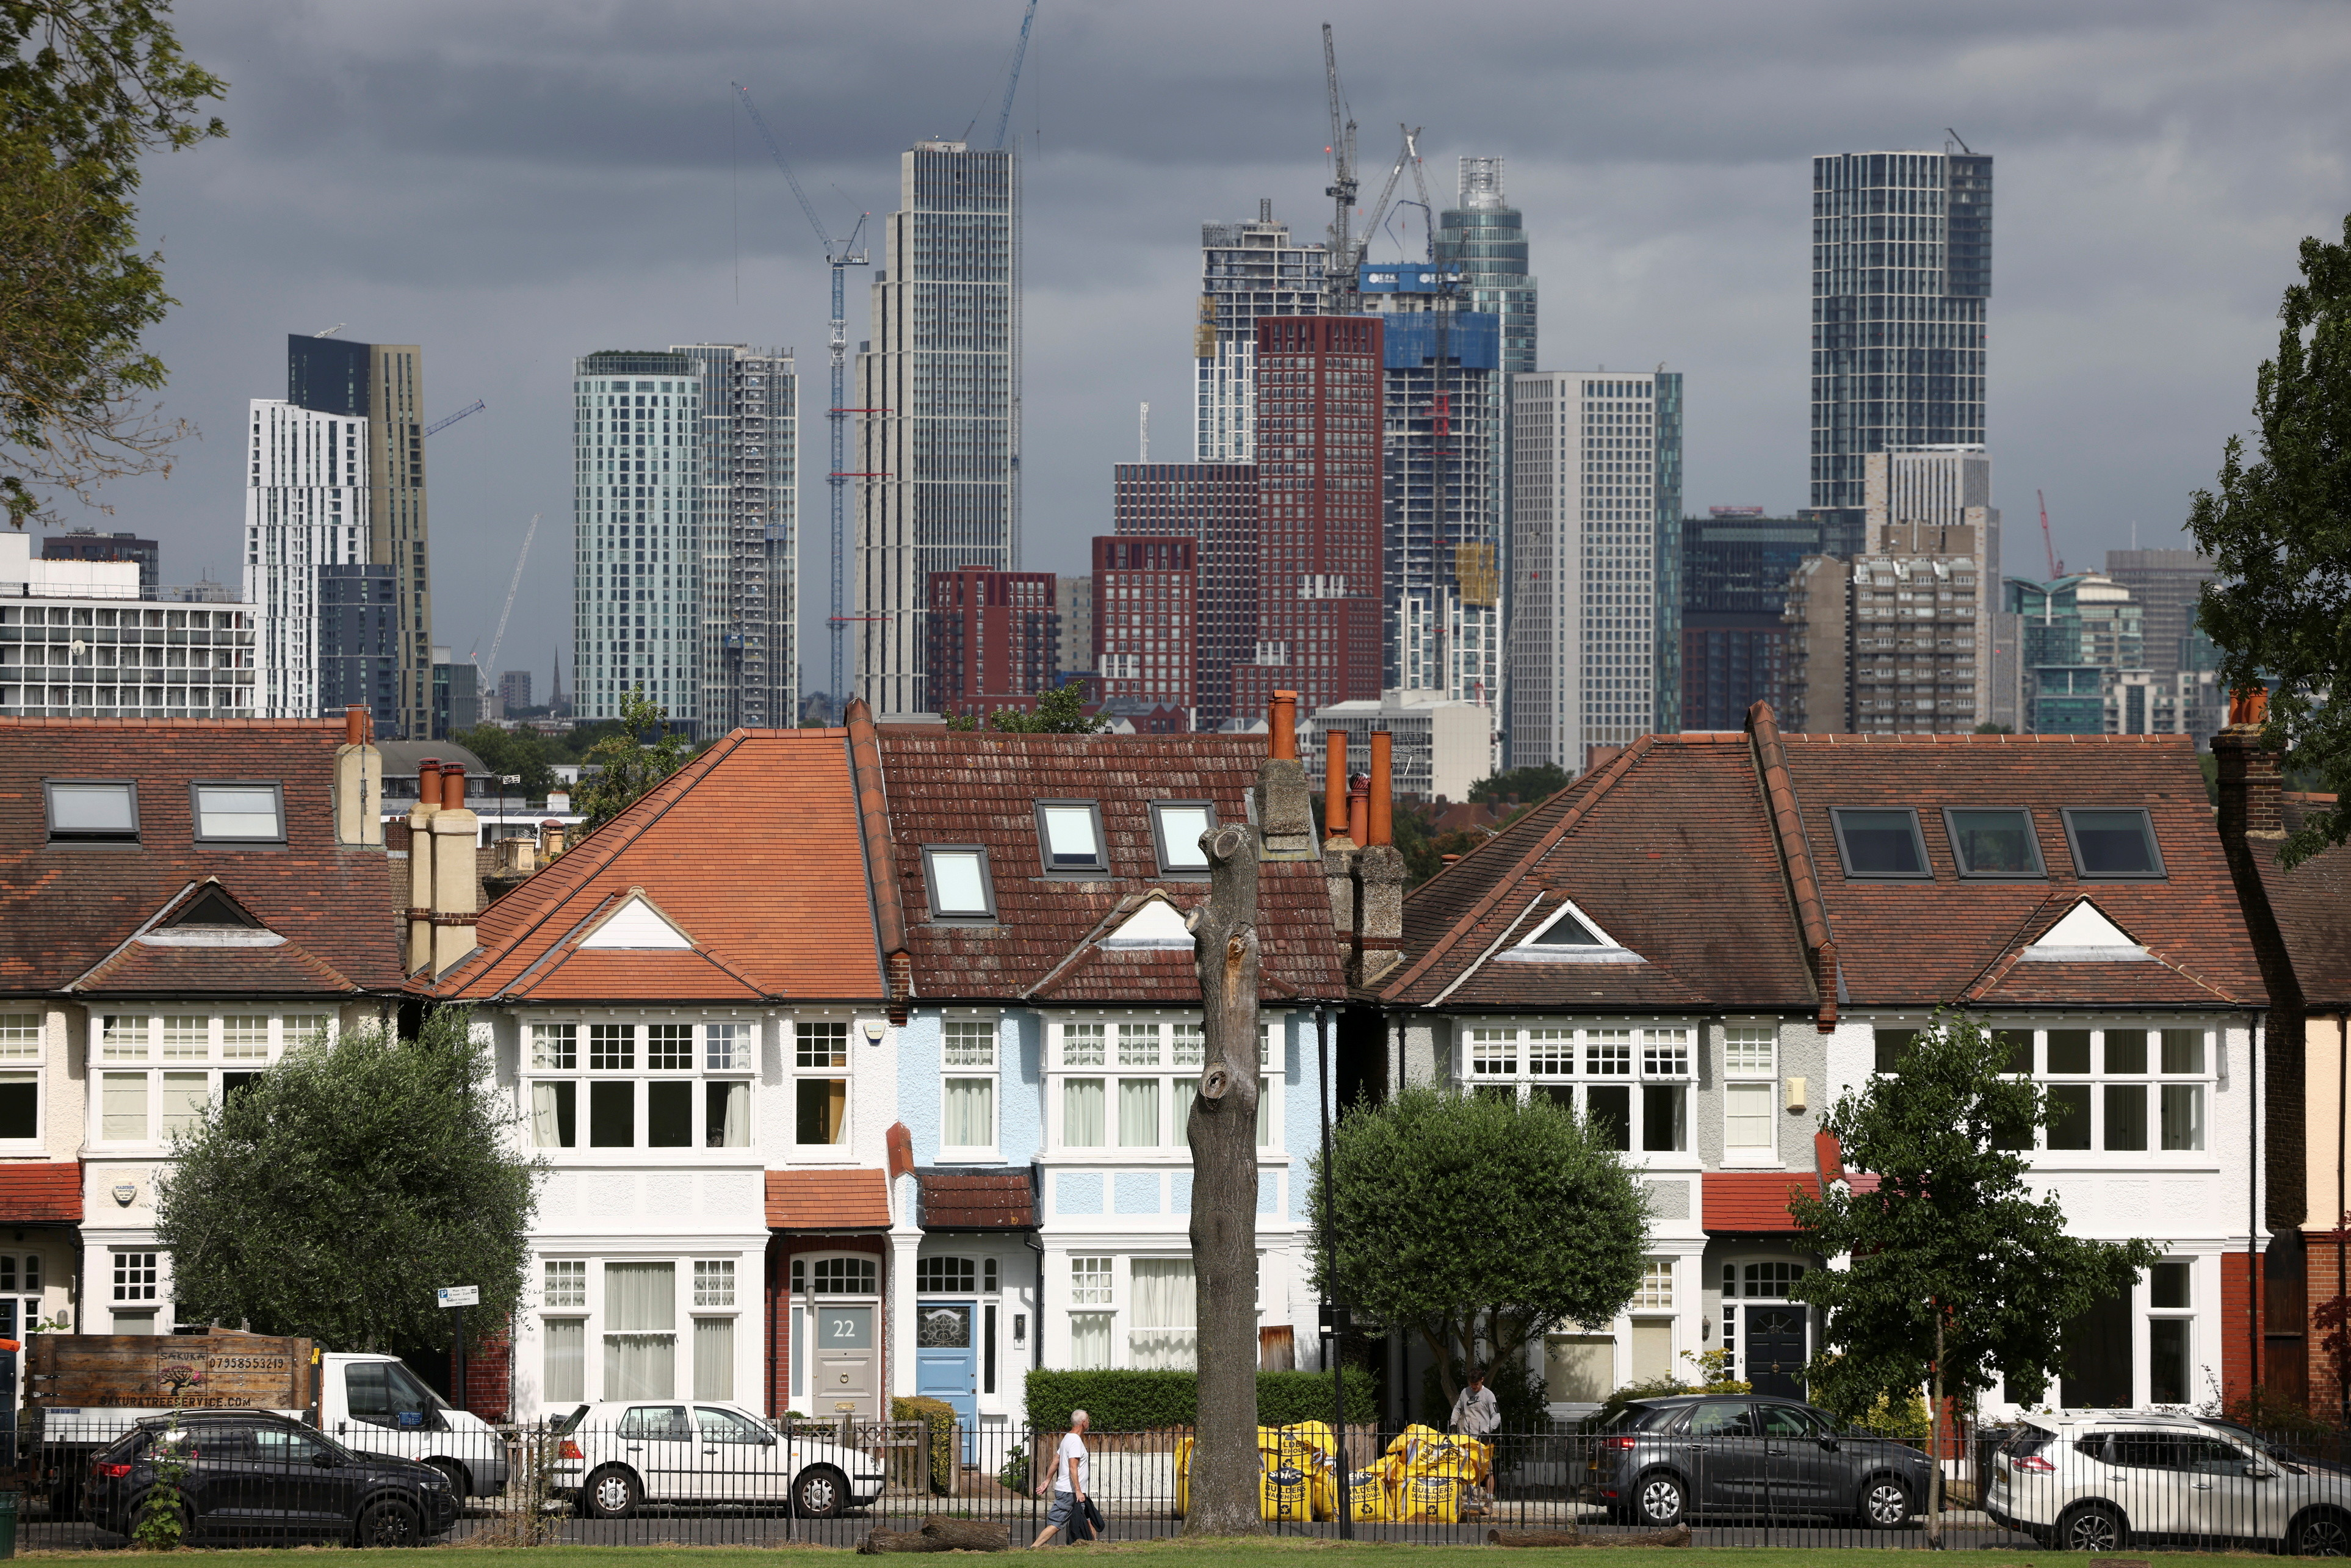 High-rise apartments under construction can be seen in the distance behind a row of residential housing in south London, Britain, August 6, 2021. REUTERS/Henry Nicholls - RC2MZO96C6E3